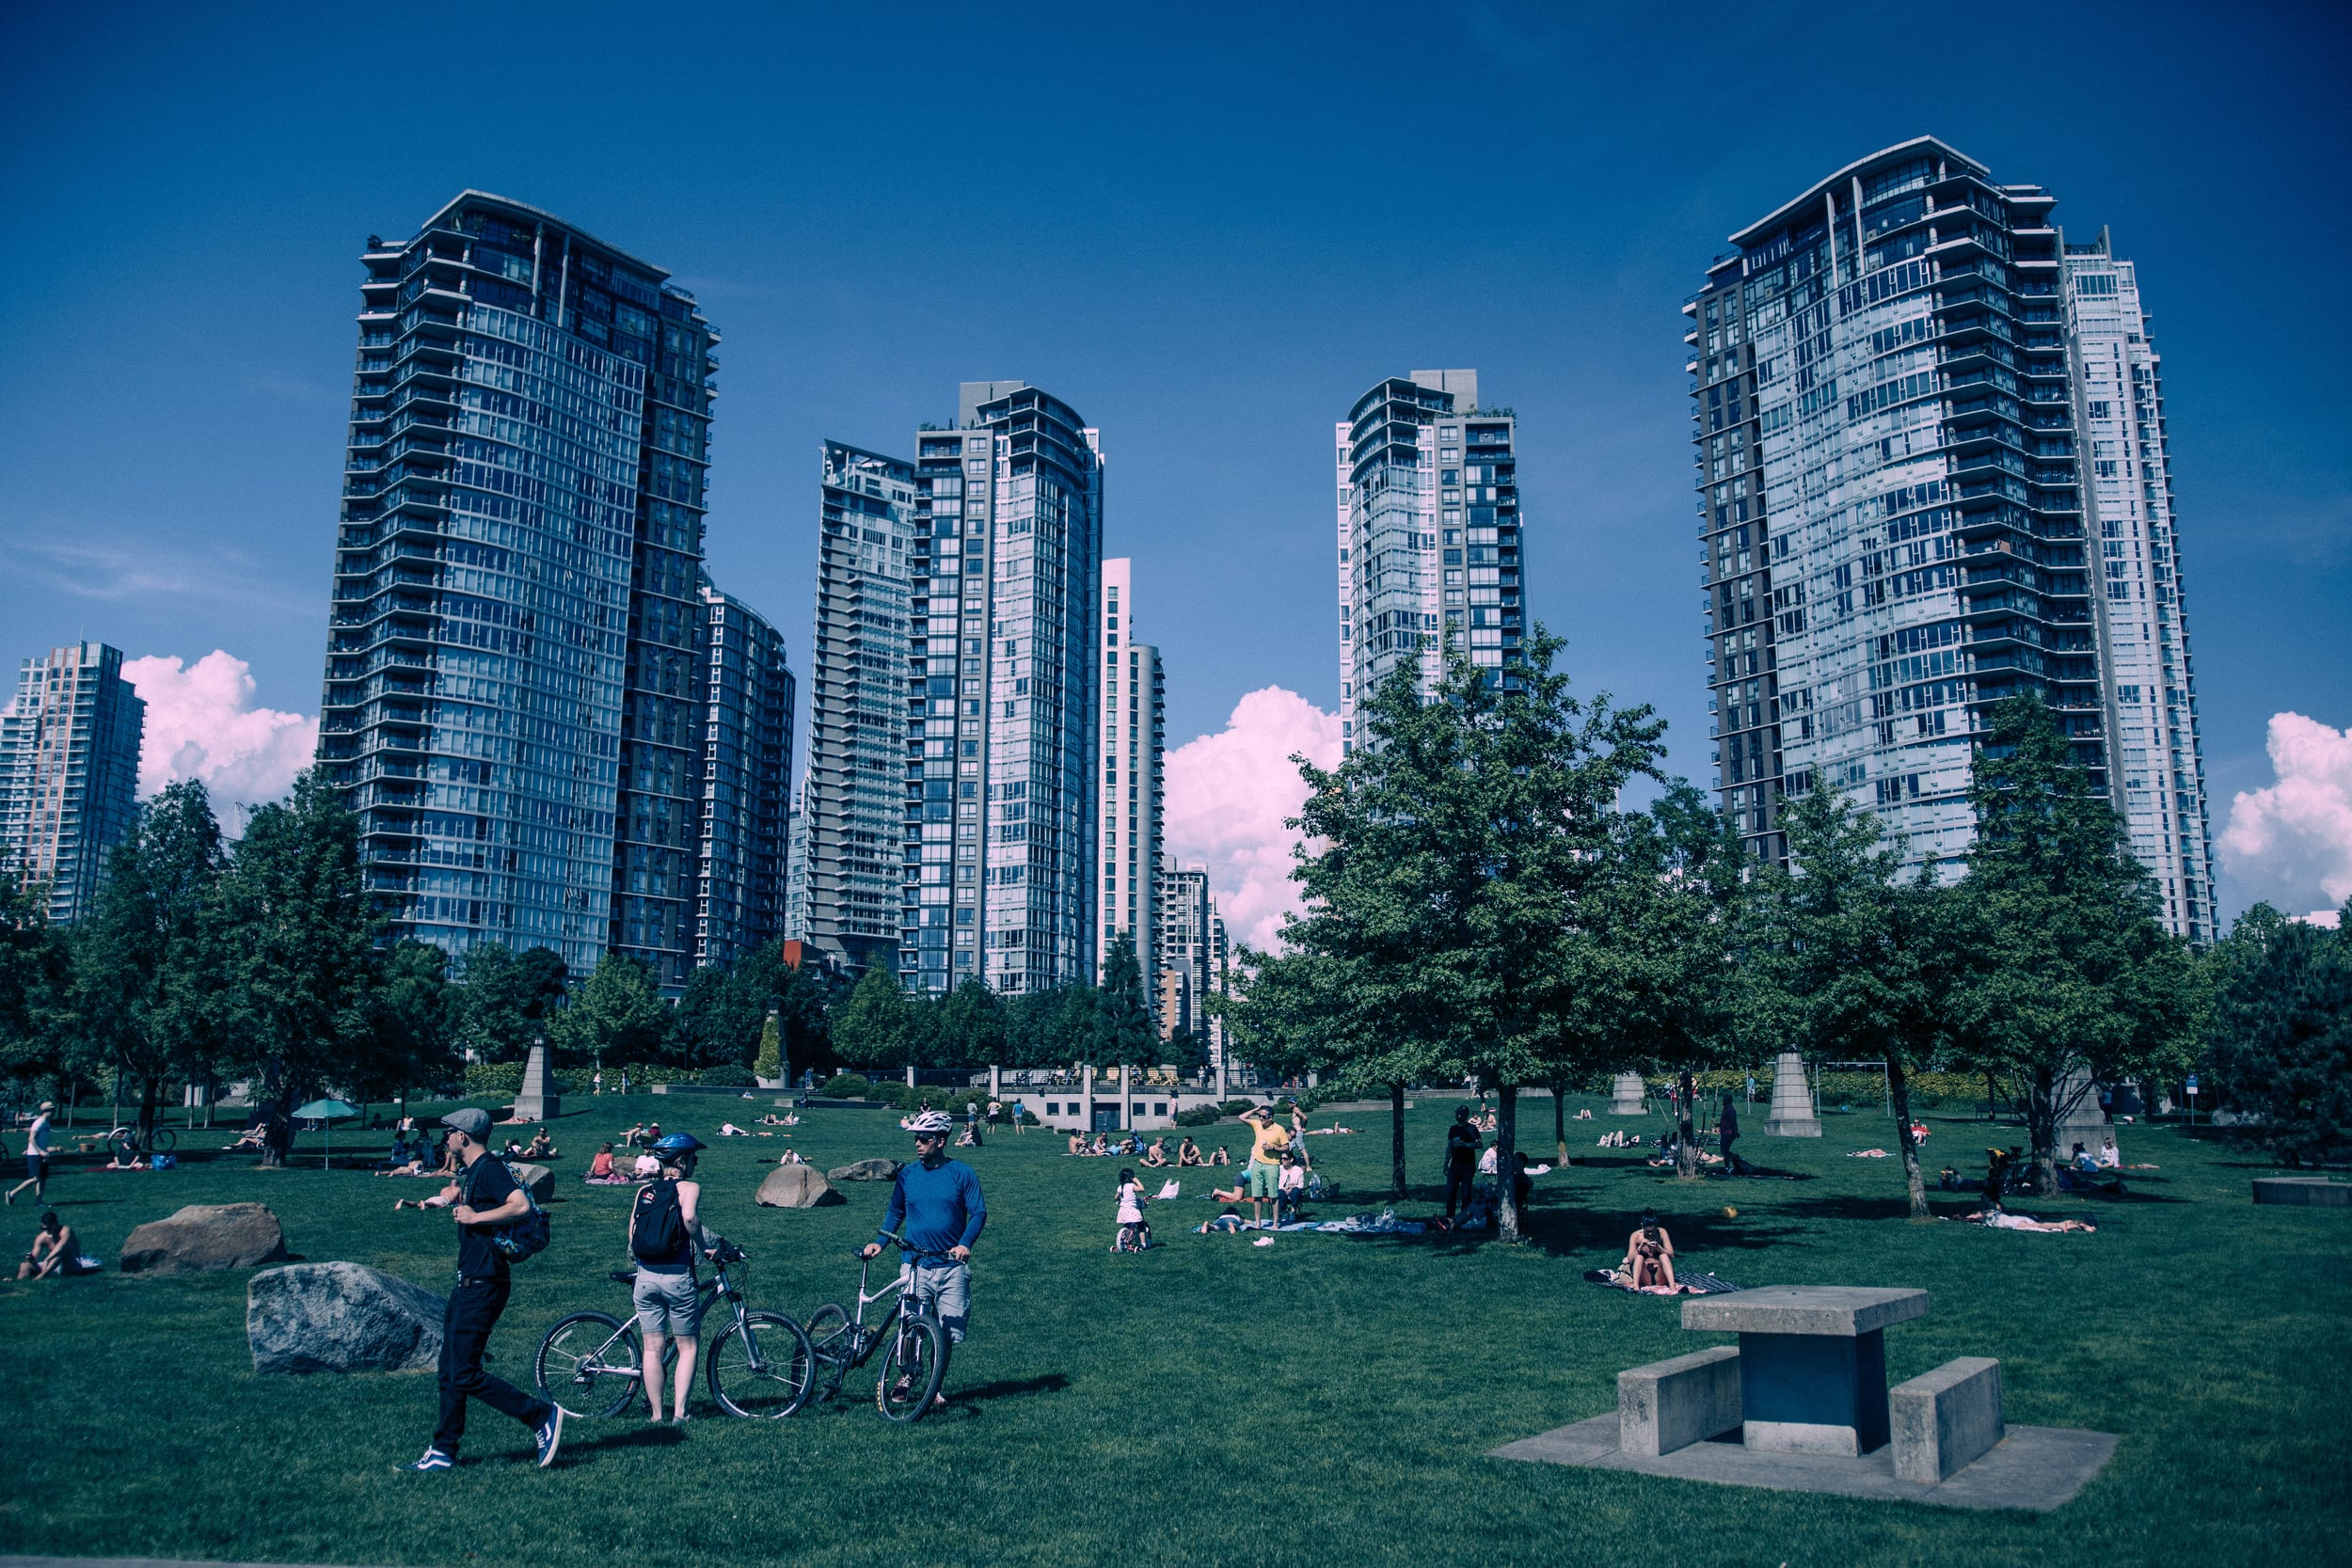 A typical parkscape: children frolic and adults watch while urbanity and nature harmonize.